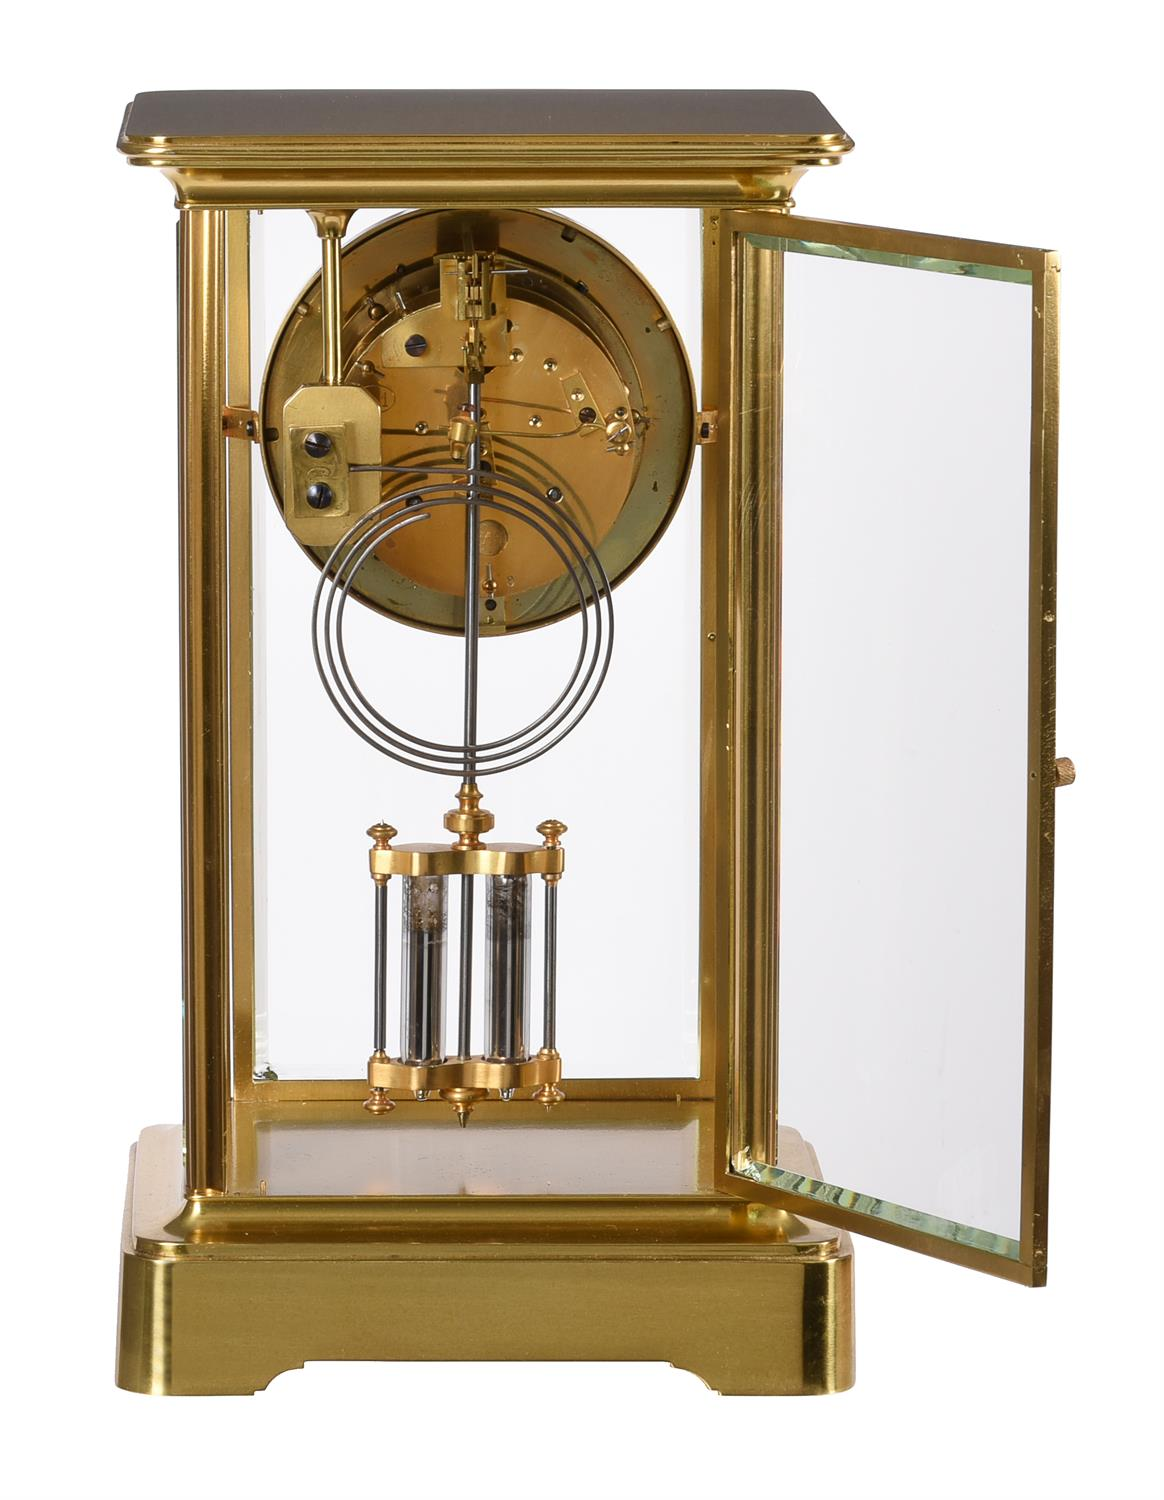 A French gilt brass four-glass mantel clock - Image 2 of 2